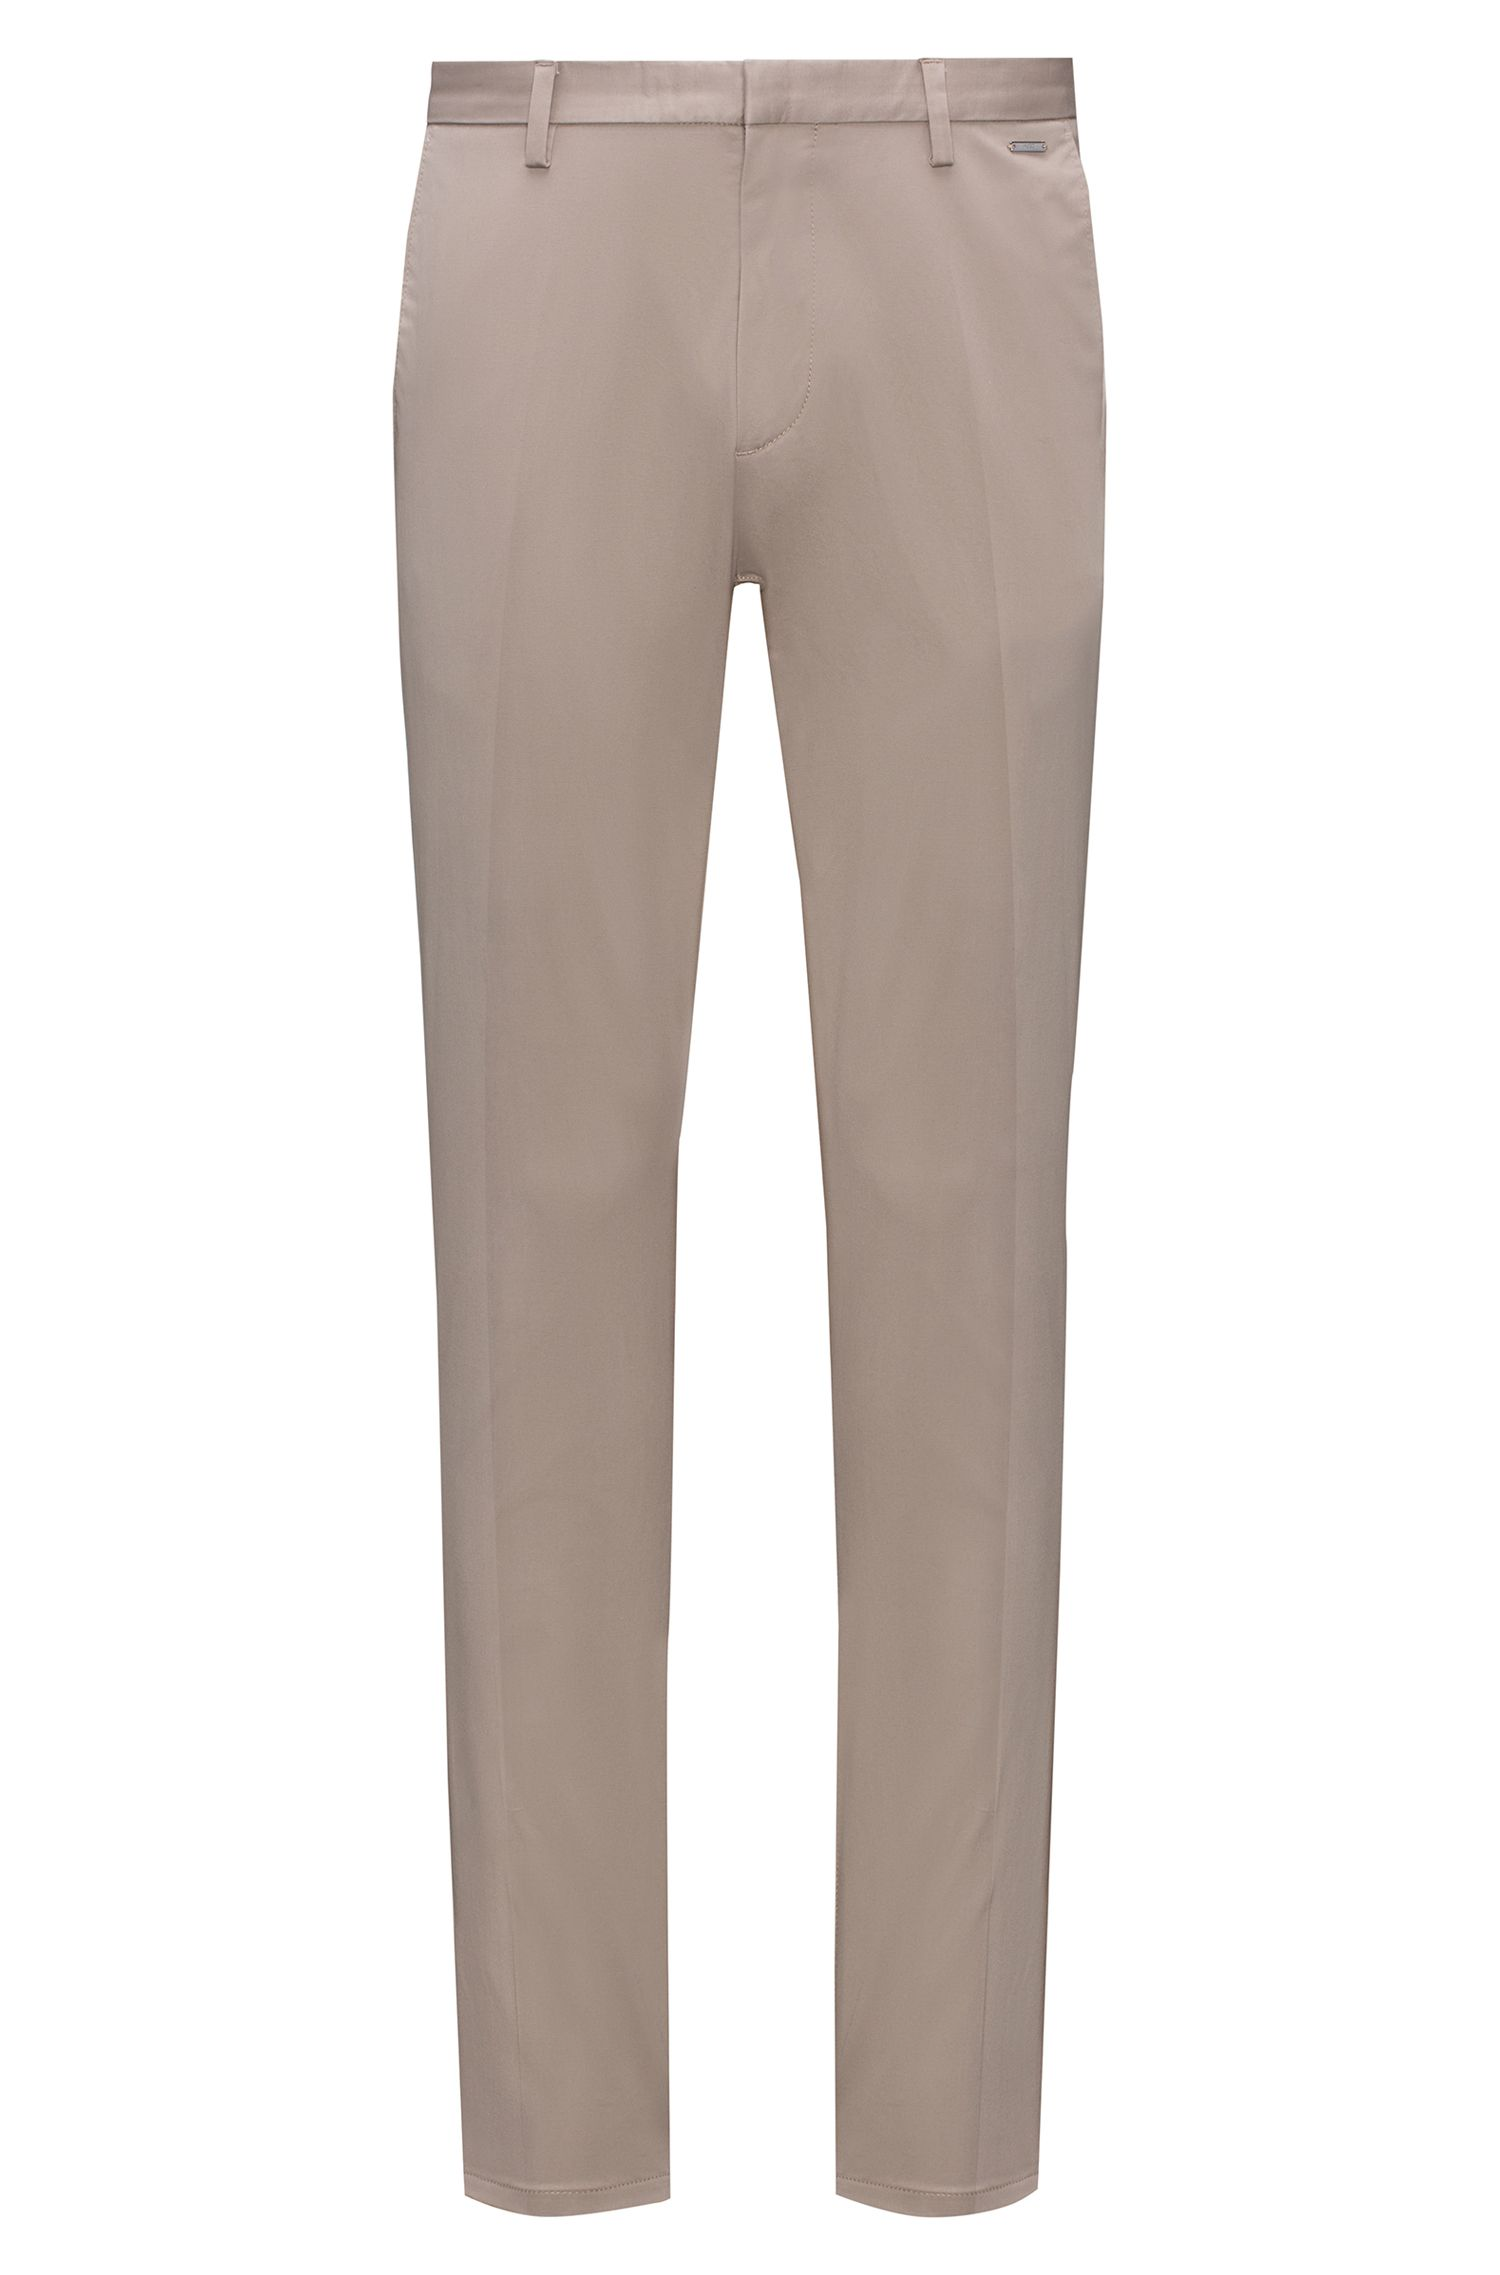 Pantalon Slim Fit léger en gabardine de coton stretch